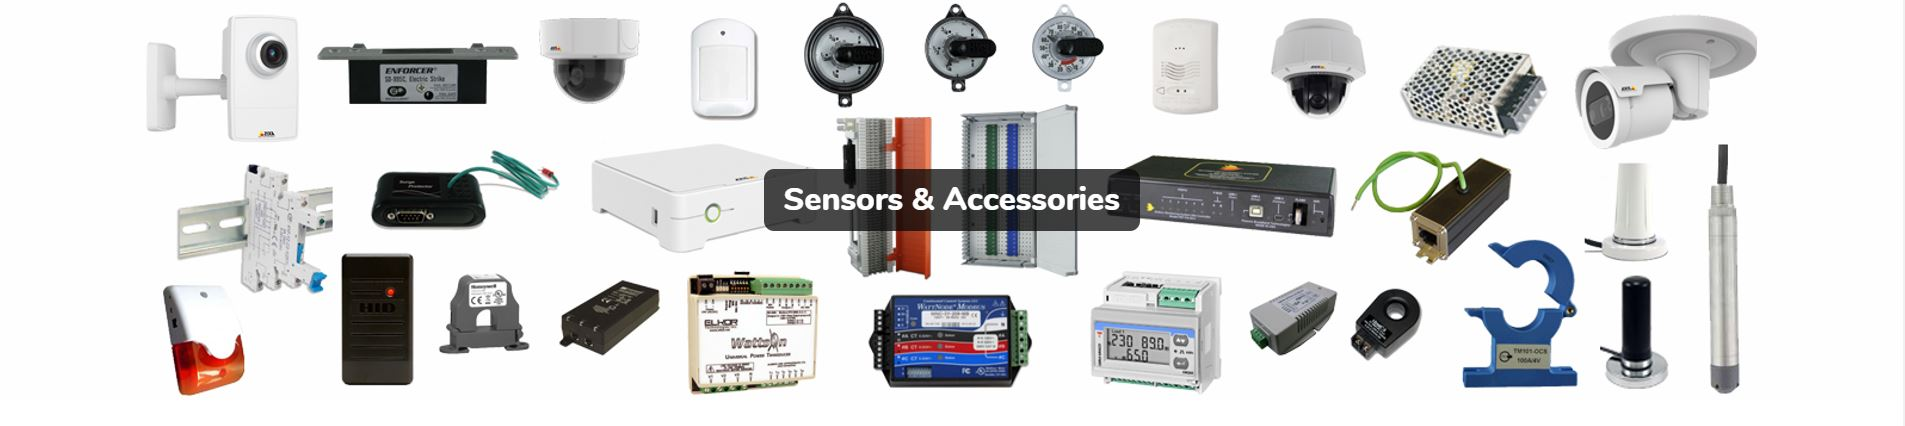 environmental monitoring sensors